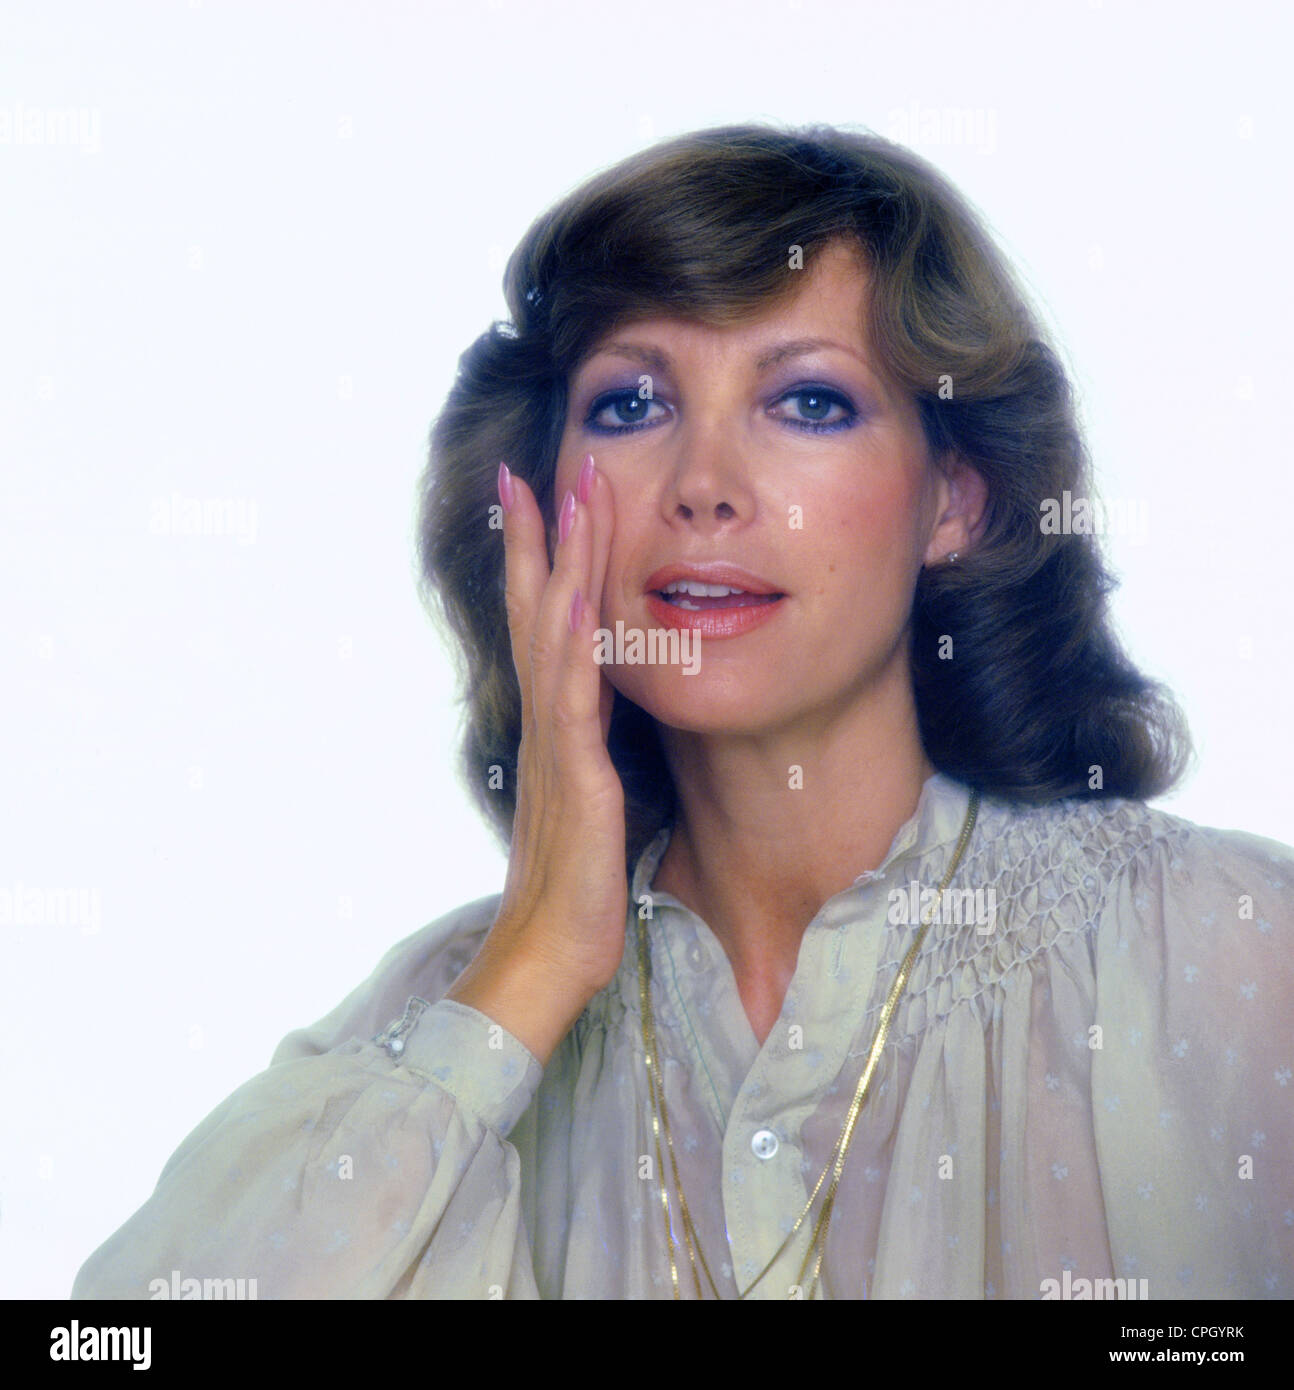 Schuermann, Petra, 15.9.1935 - 13.1.2010, German actress, TV presenter, portrait, 1970s, Additional-Rights-Clearances - Stock Image